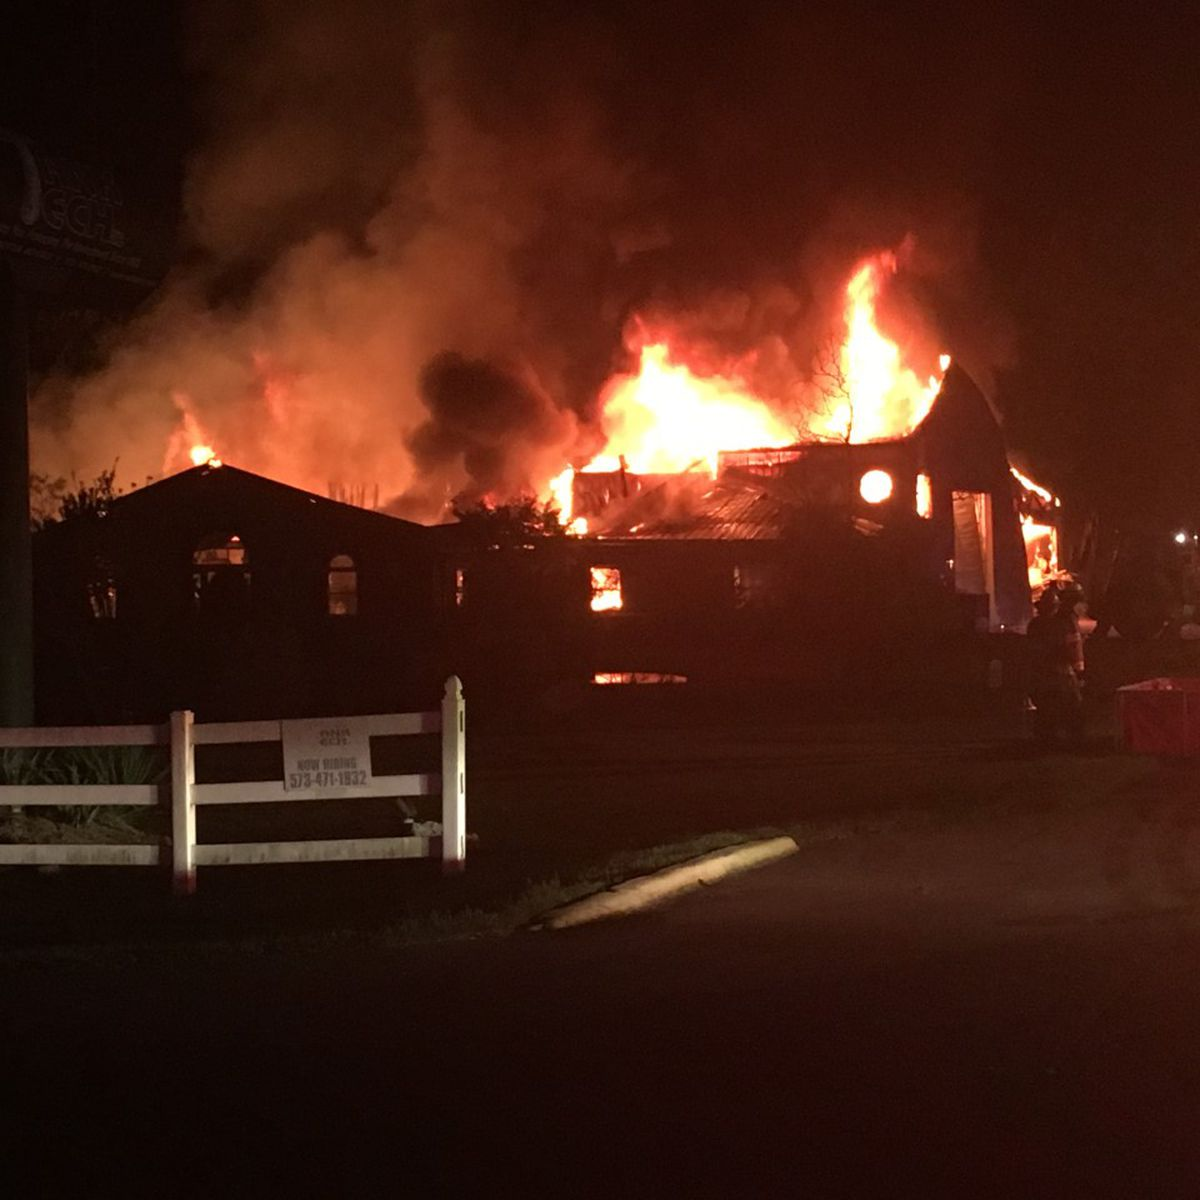 City boil order lifted following intense business fire in